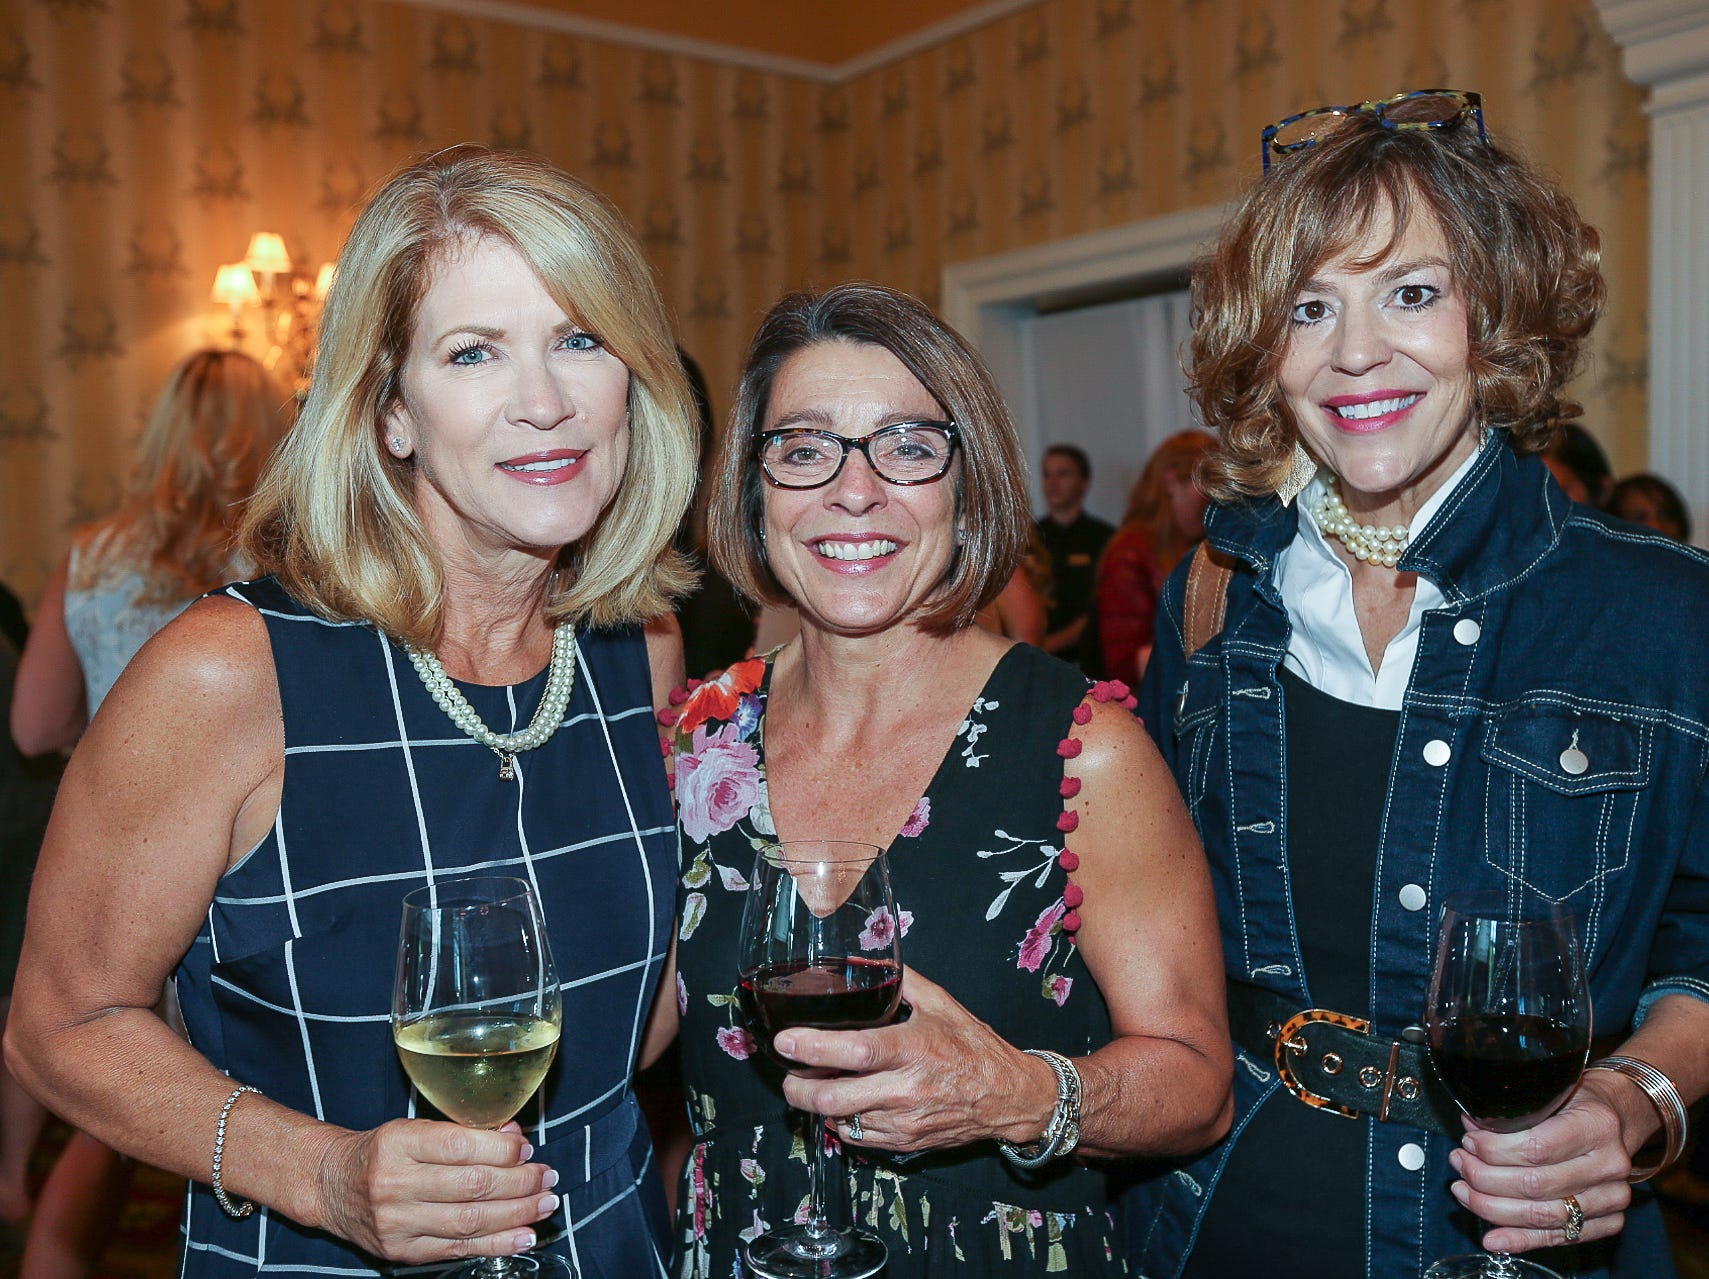 Kathy Hare, Gail Smart, and Susan Kirkman